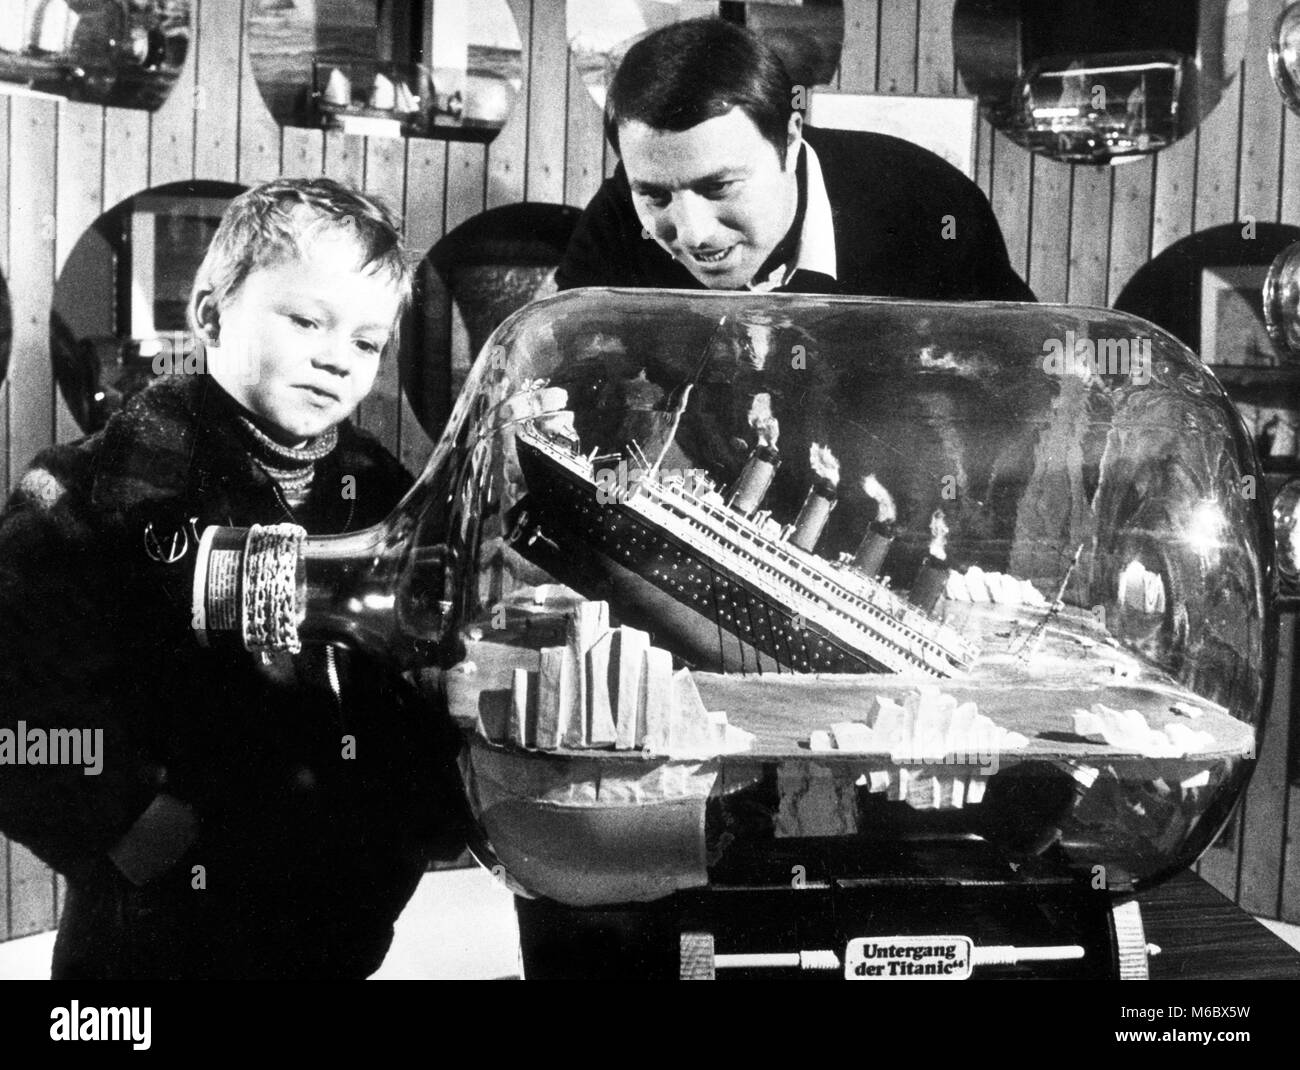 A model of the sinking liner Titanic - wrecked by an iceberg in 1912 - enthrals a young visitor at the Bottle Ship - Stock Image